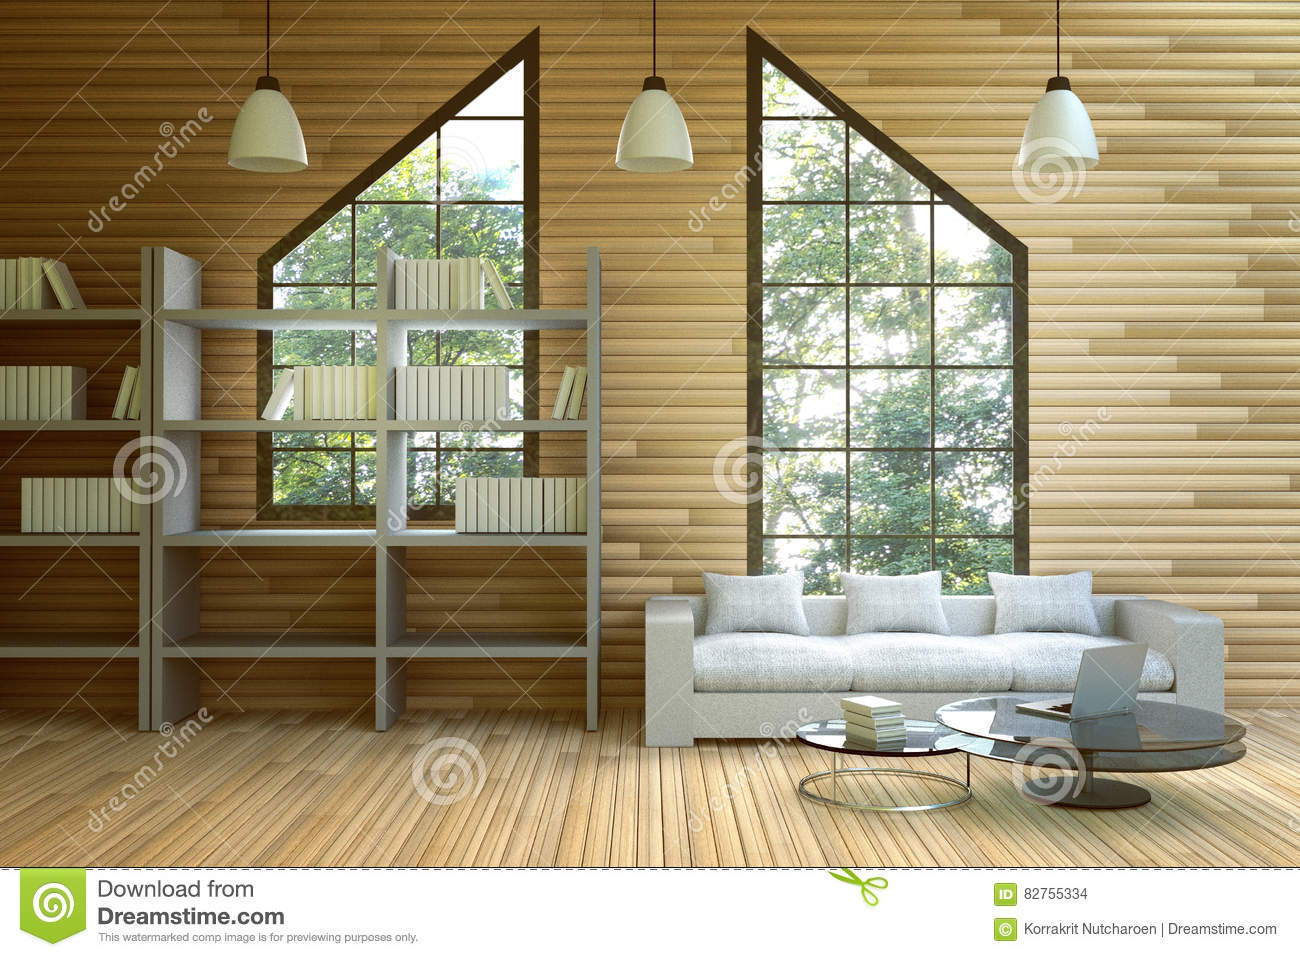 3d Rendering Illustration Of Wooden House Interior